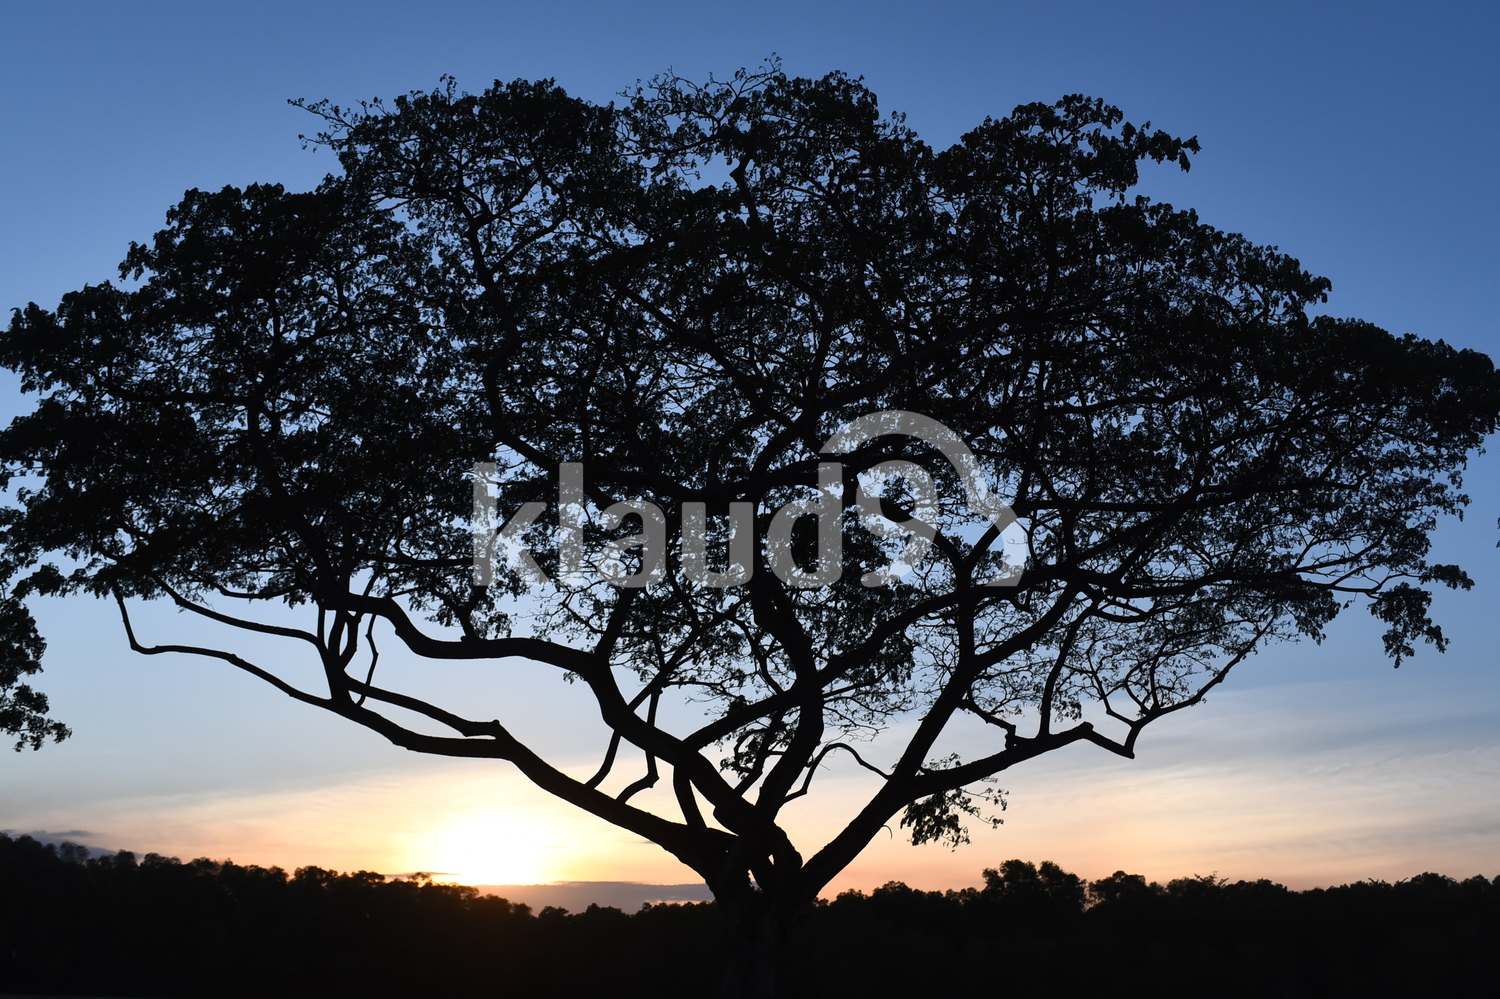 Tree in sunset silhouette